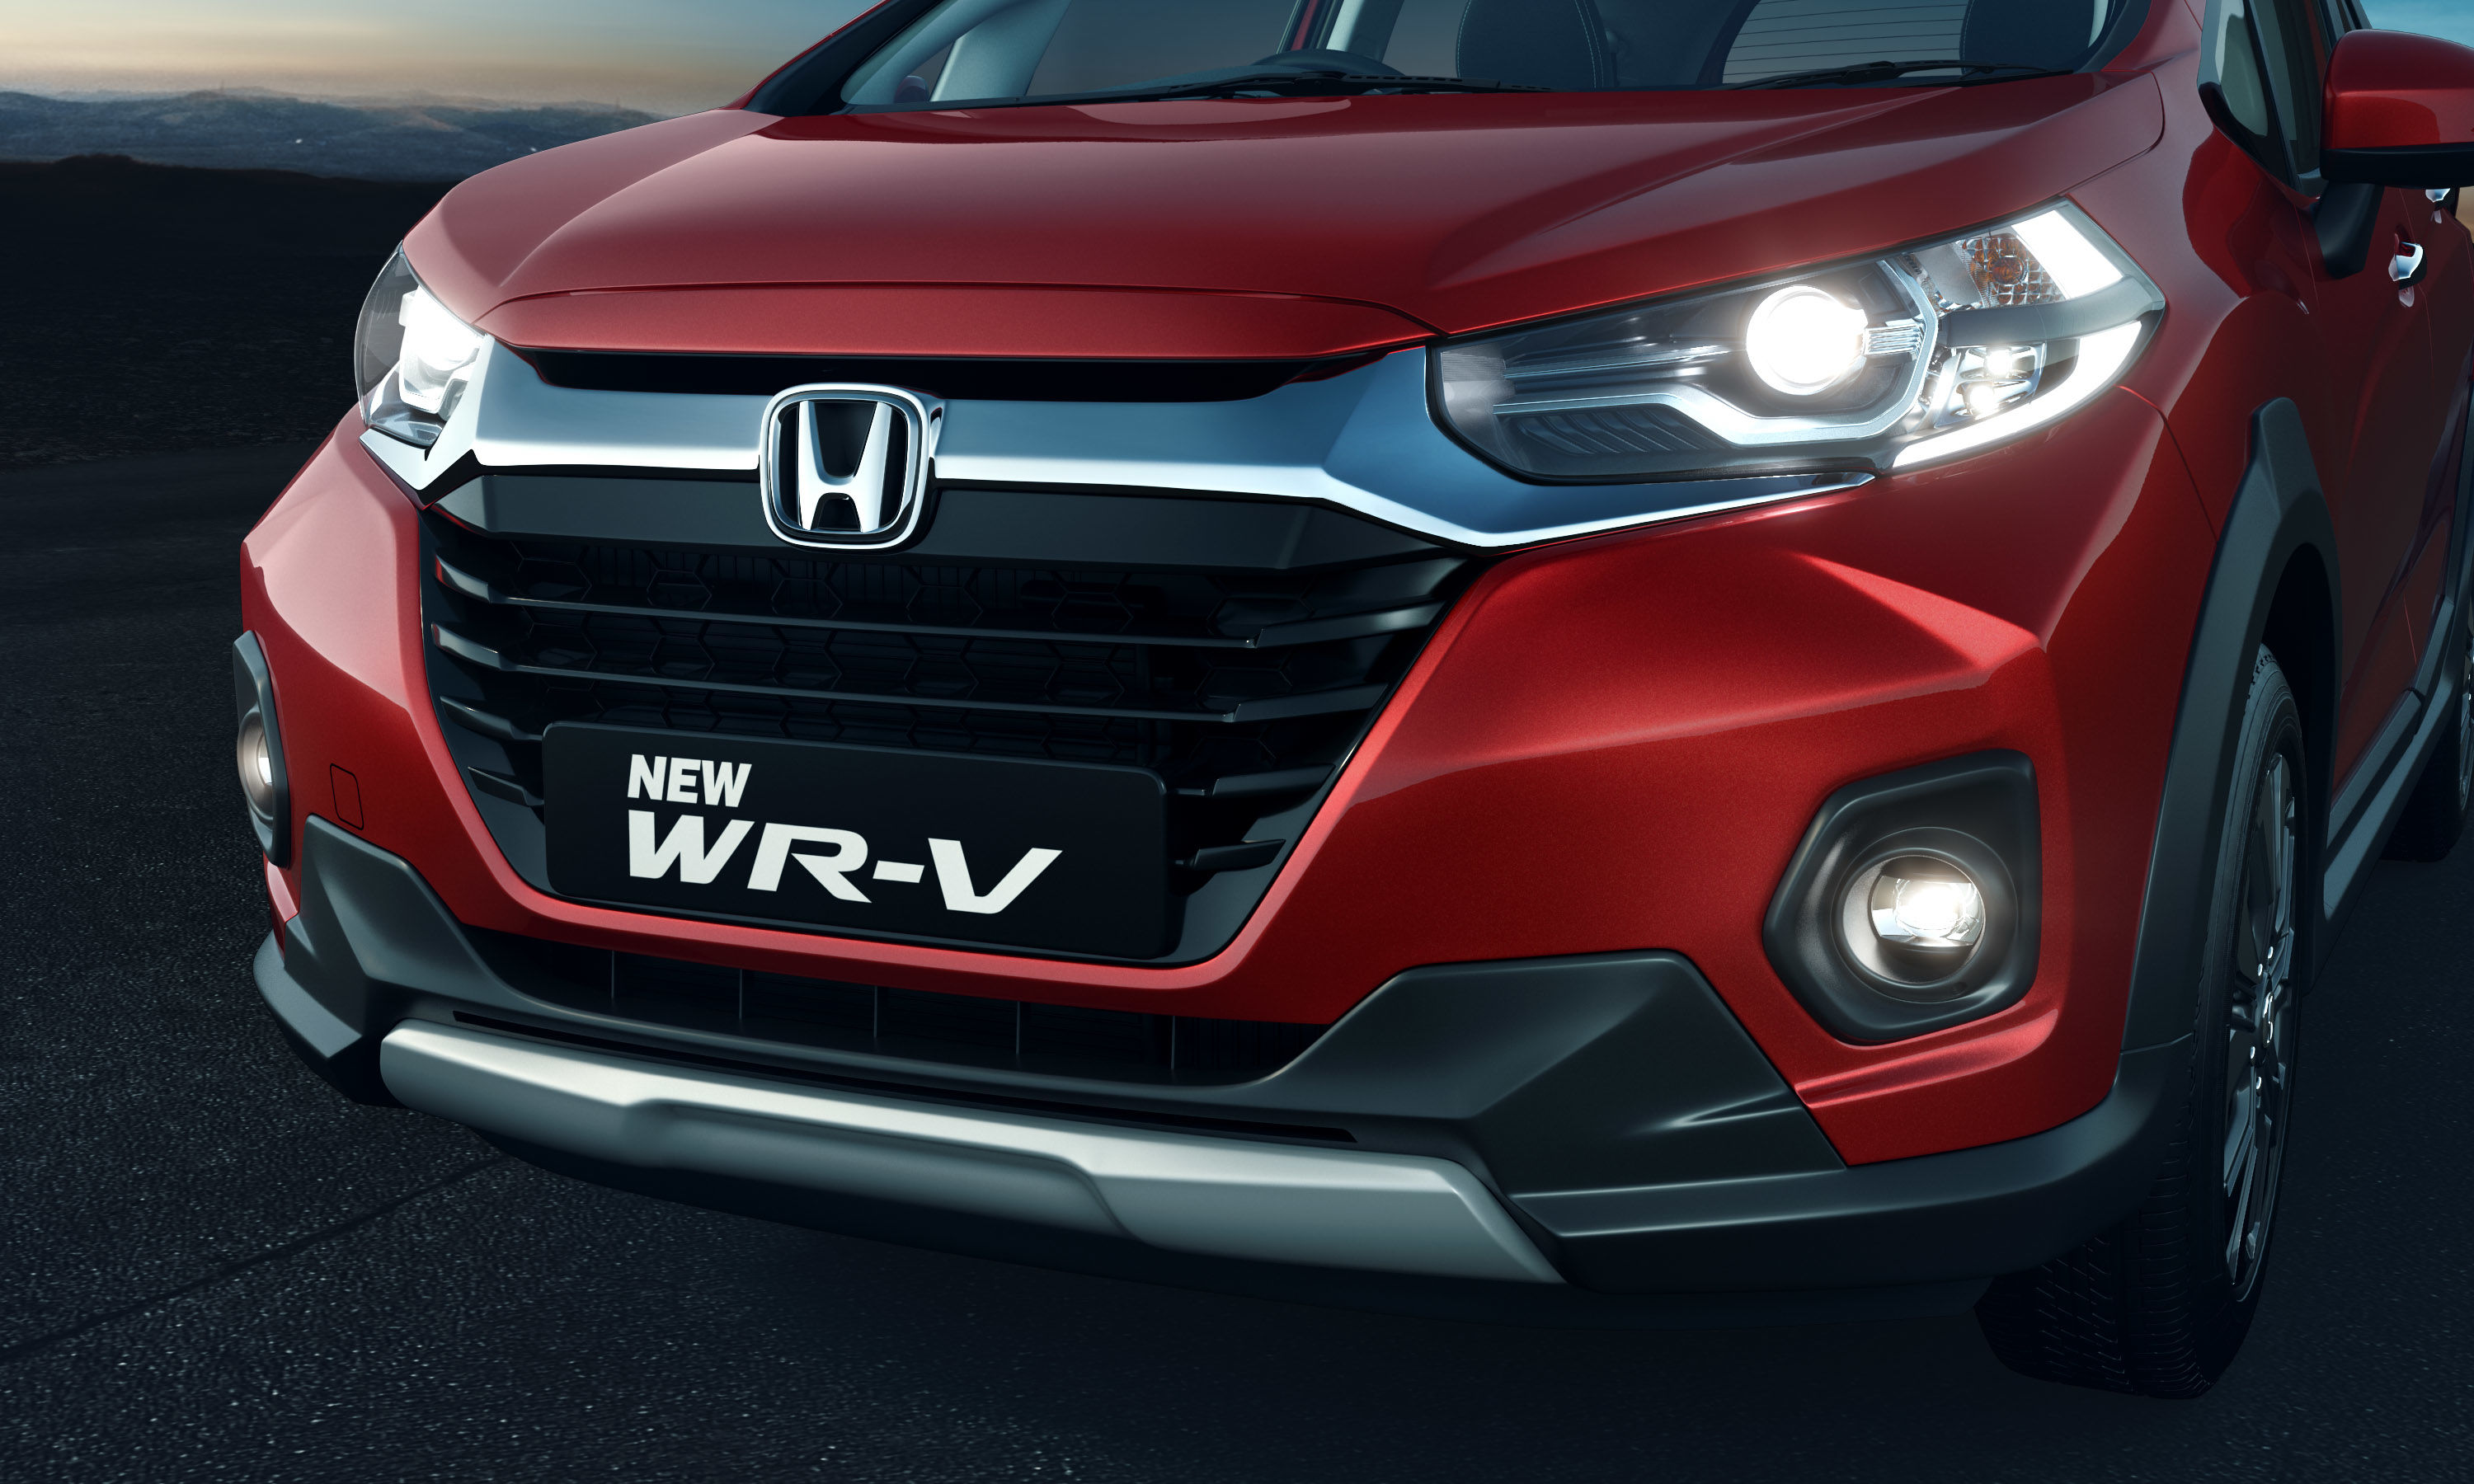 WR-V claims to offer mileage of 23.7 km/l in the 1.5-litre i-DTEC engine option which has max power of 100ps@3600 rpm. In the 1.2L i-VTEC petrol engine, mileage is claimed to be at 16.5 km/l and there's max power of 90PS@6000 rpm. Max torque figures are 200 Nm and  110 Nm, respectively.